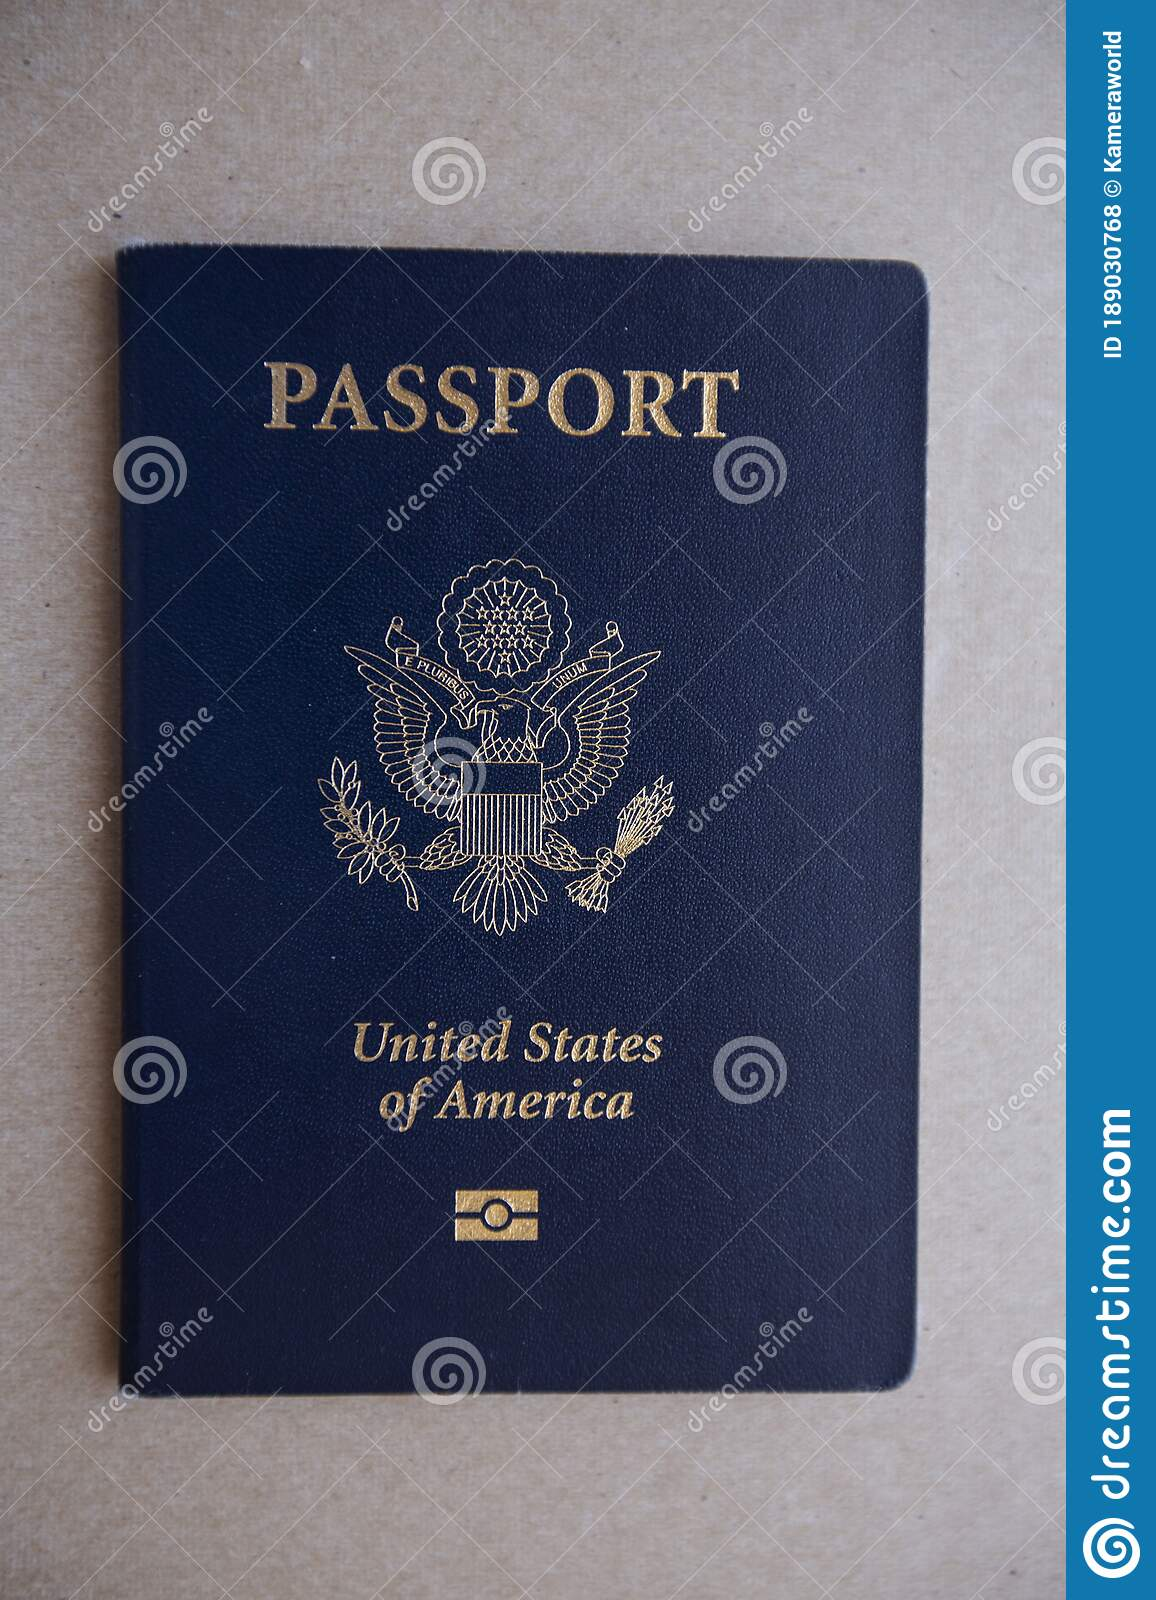 Cover Of United States Of America Passport Stock Photo